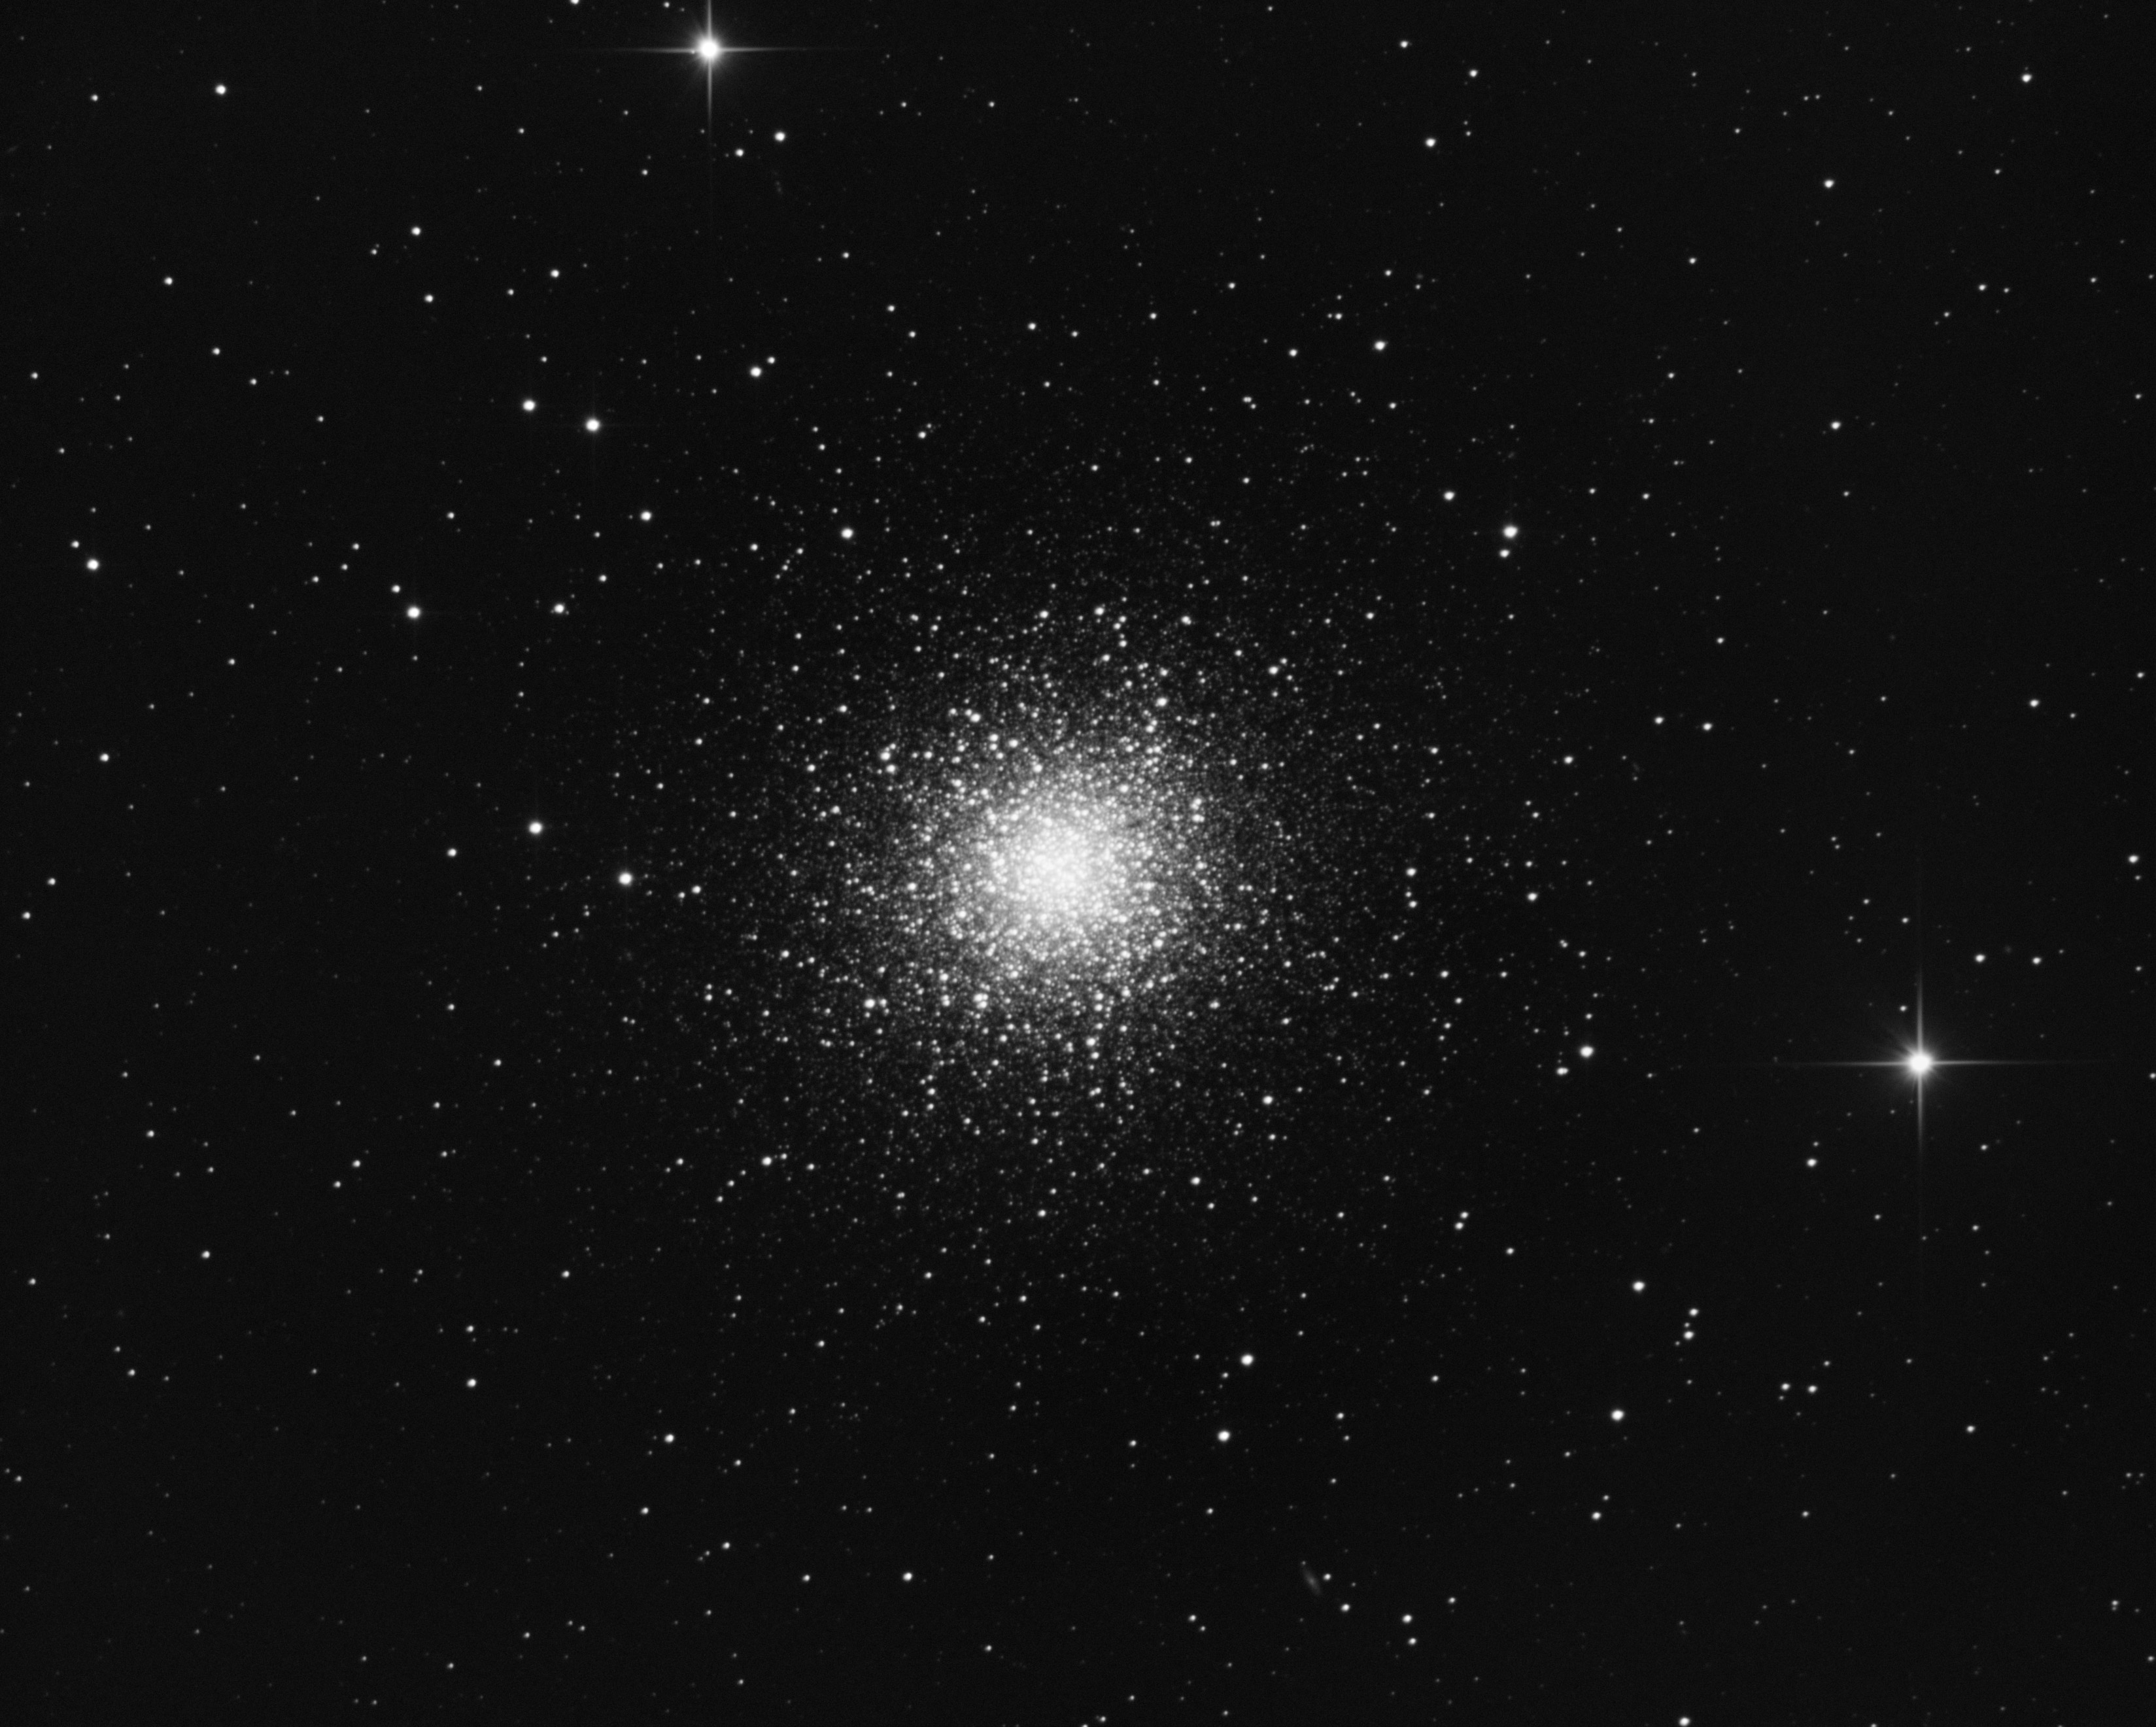 Veiw full sized image of Hercules Great Cluster M13